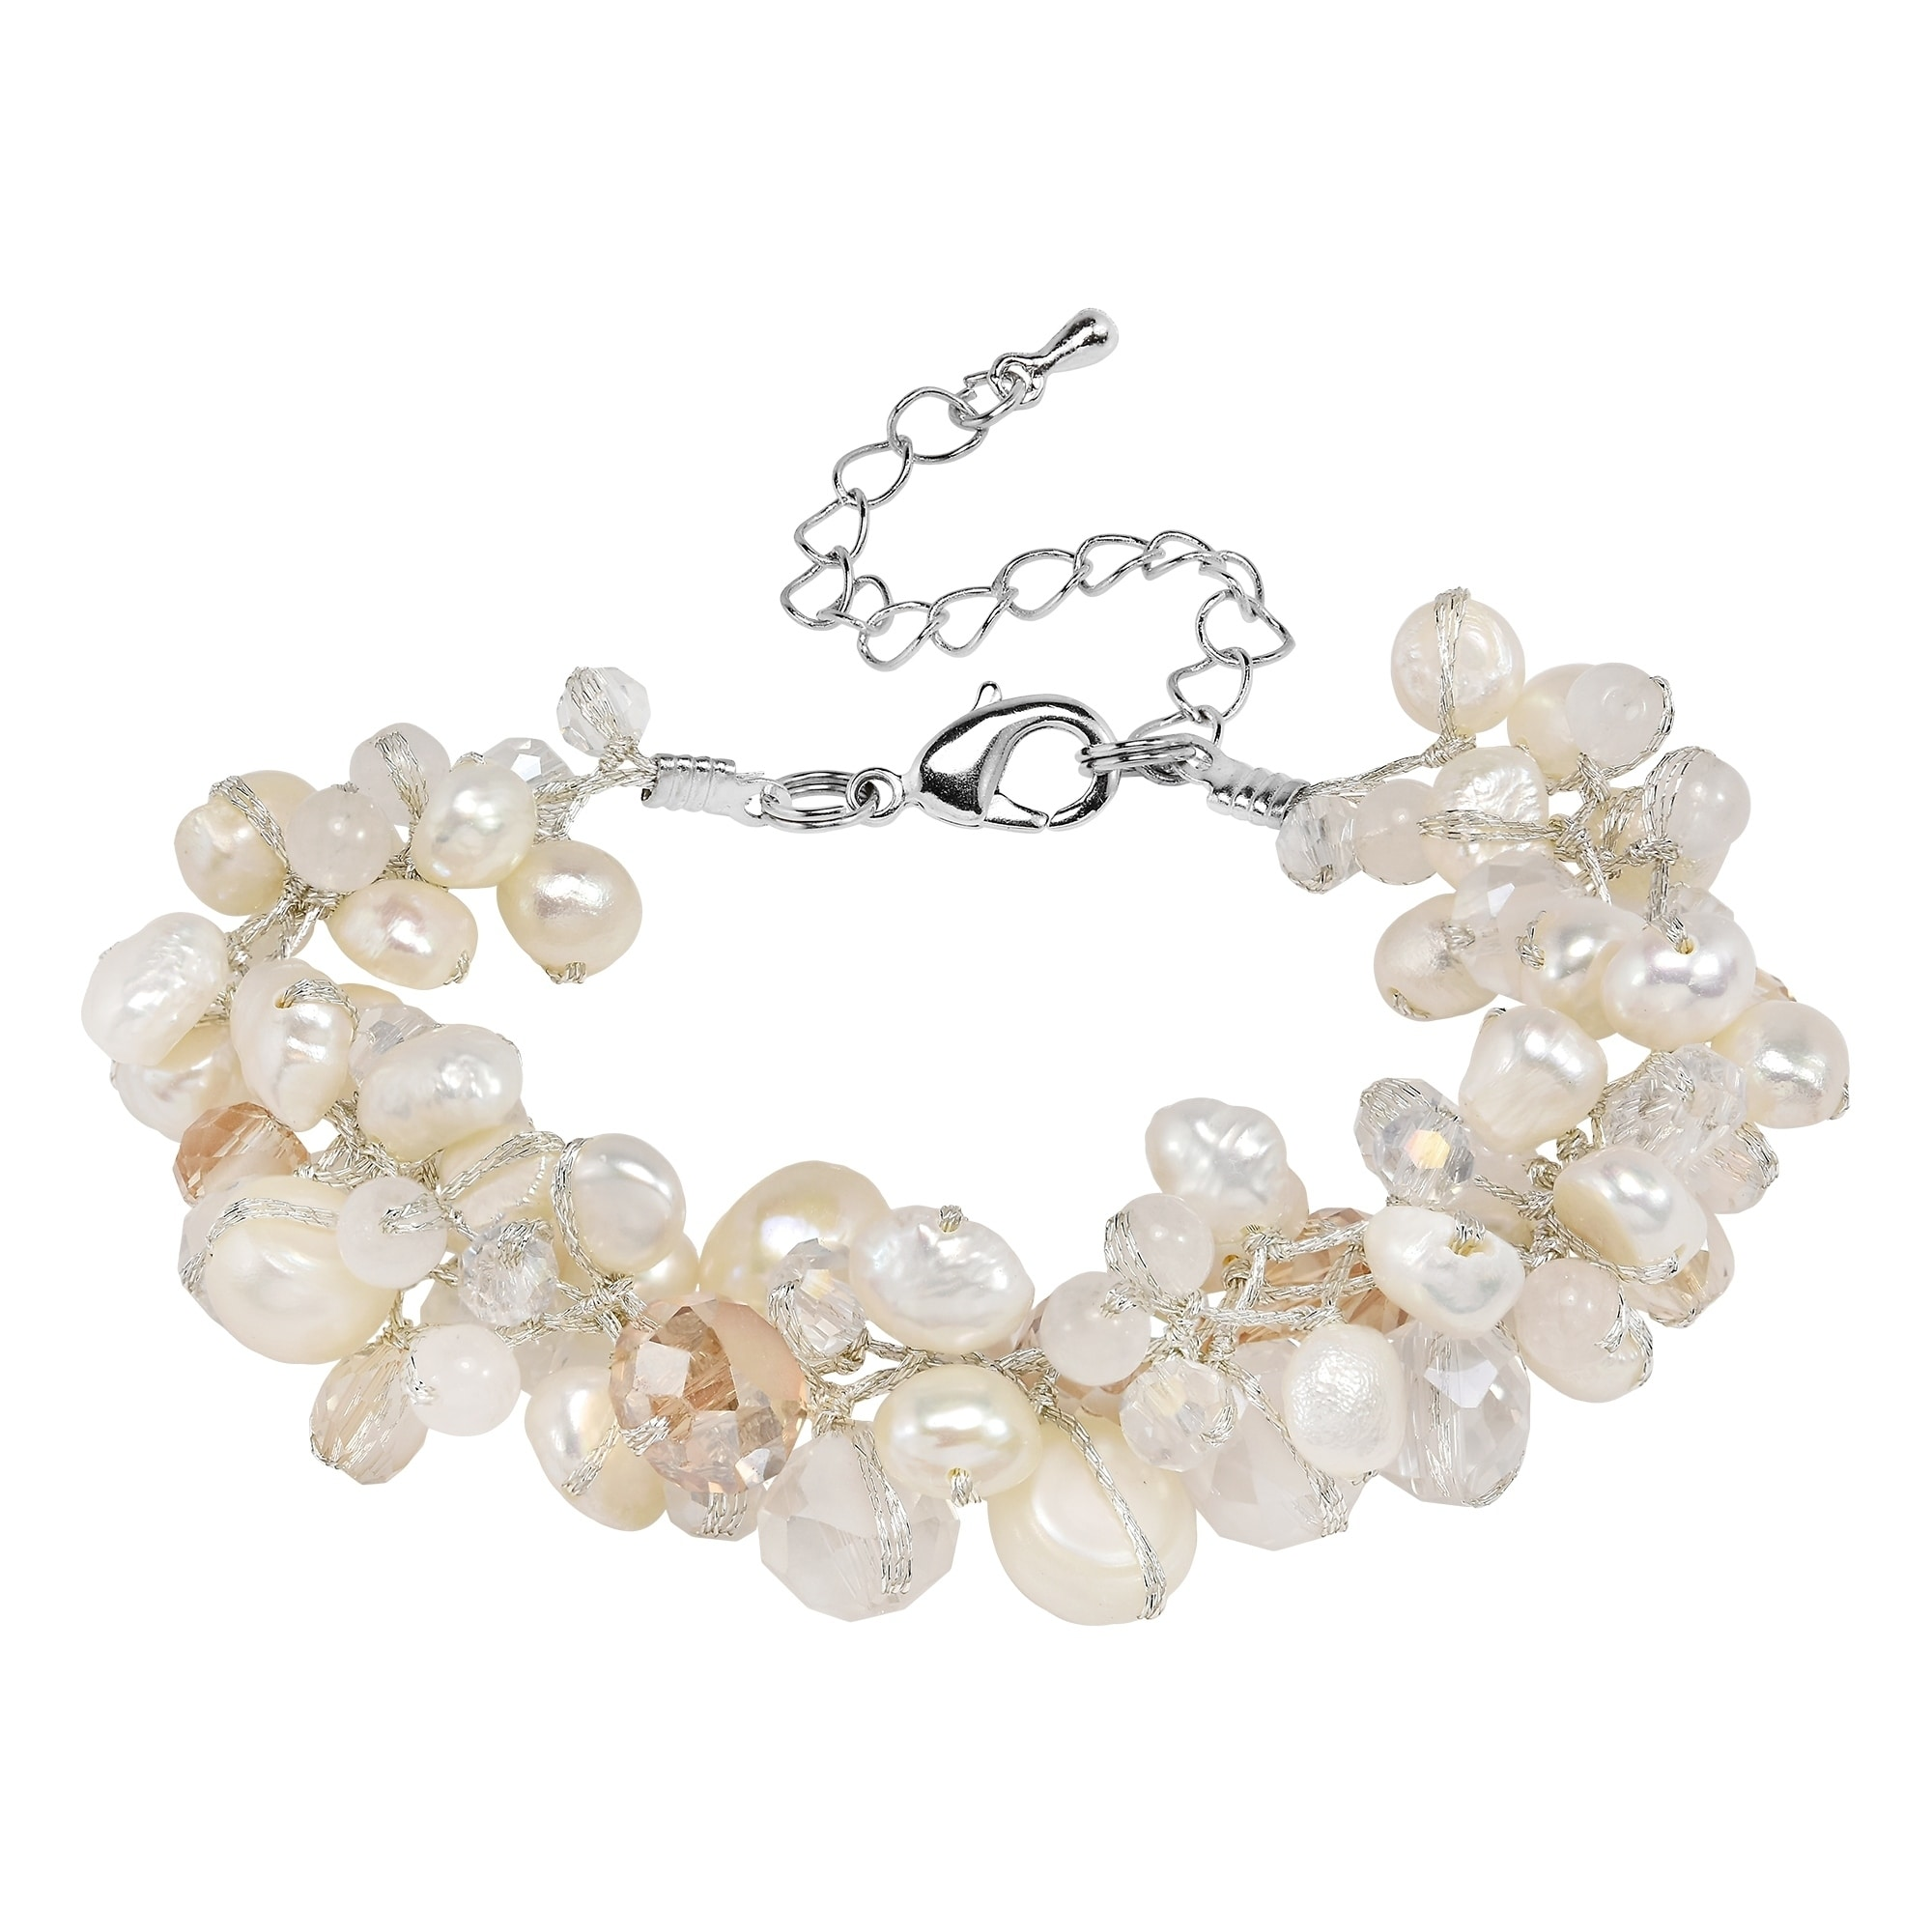 Shop Handmade Amazing Cluster Of White Pearls Crystal Beads